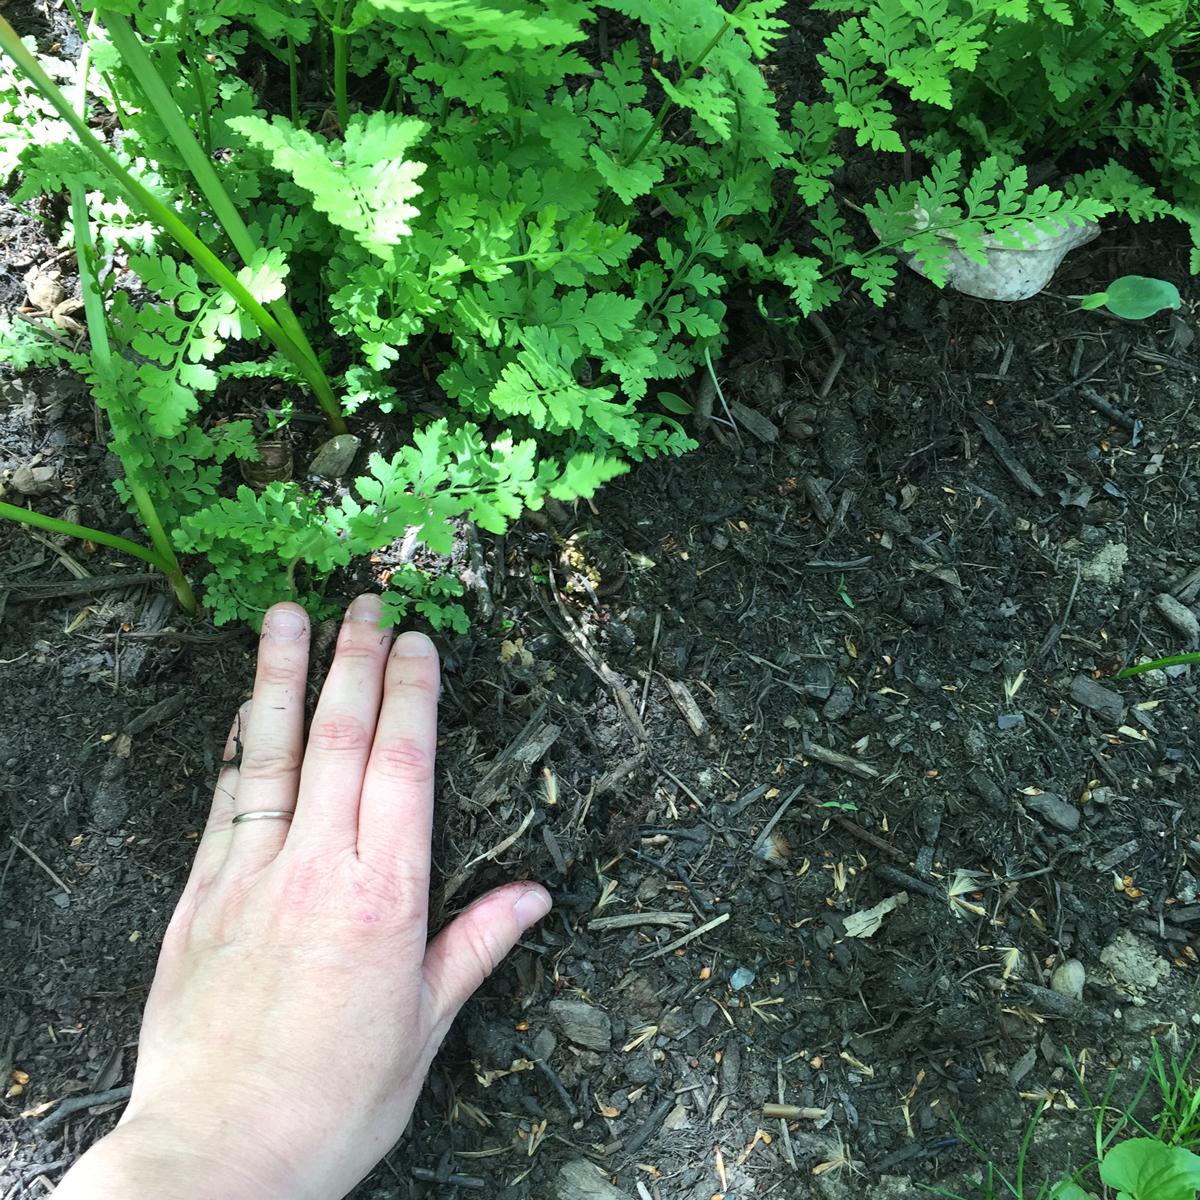 A two-inch layer of mulch applied to the gardens at Inniswood Metro Gardens as perennial plants begin to emerge